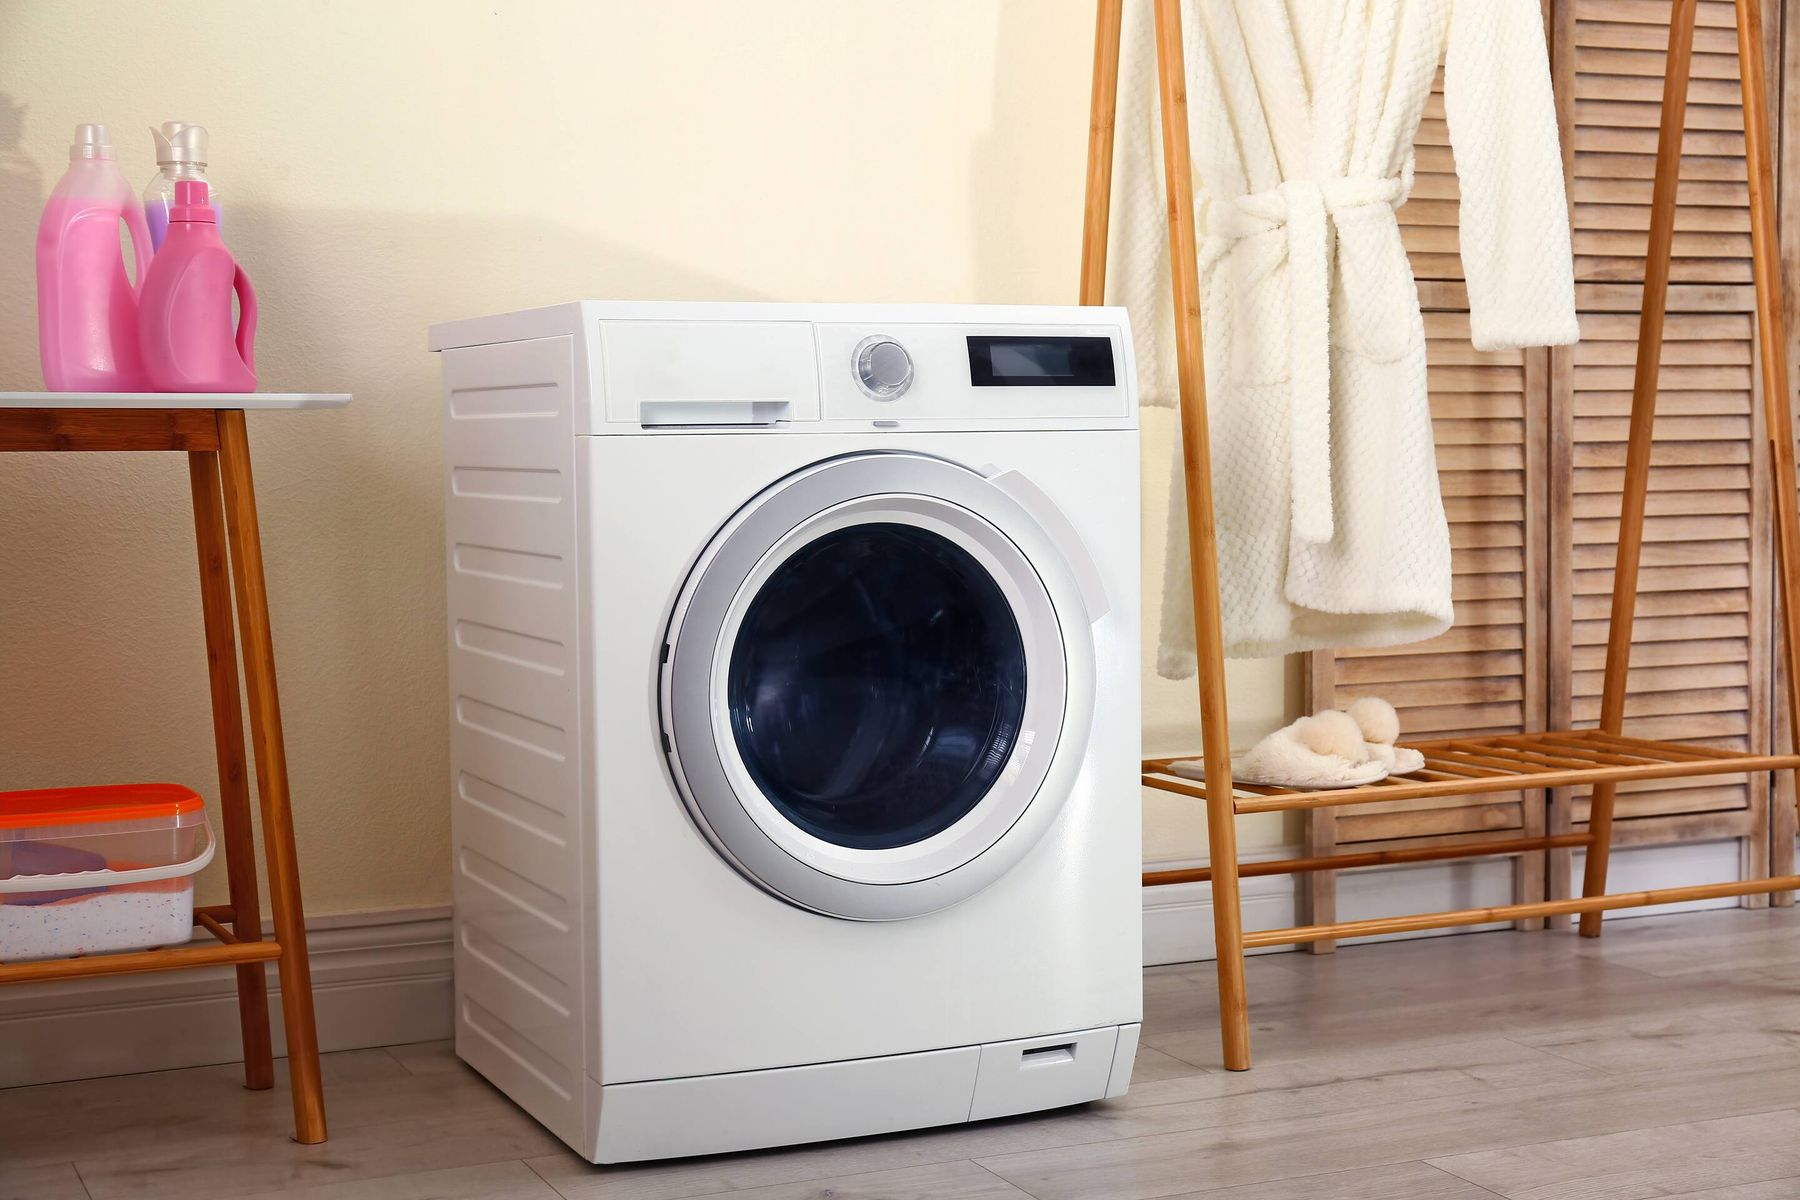 Here's How Choosing an Automatic Washing Machine Makes Drying Clothes Simpler